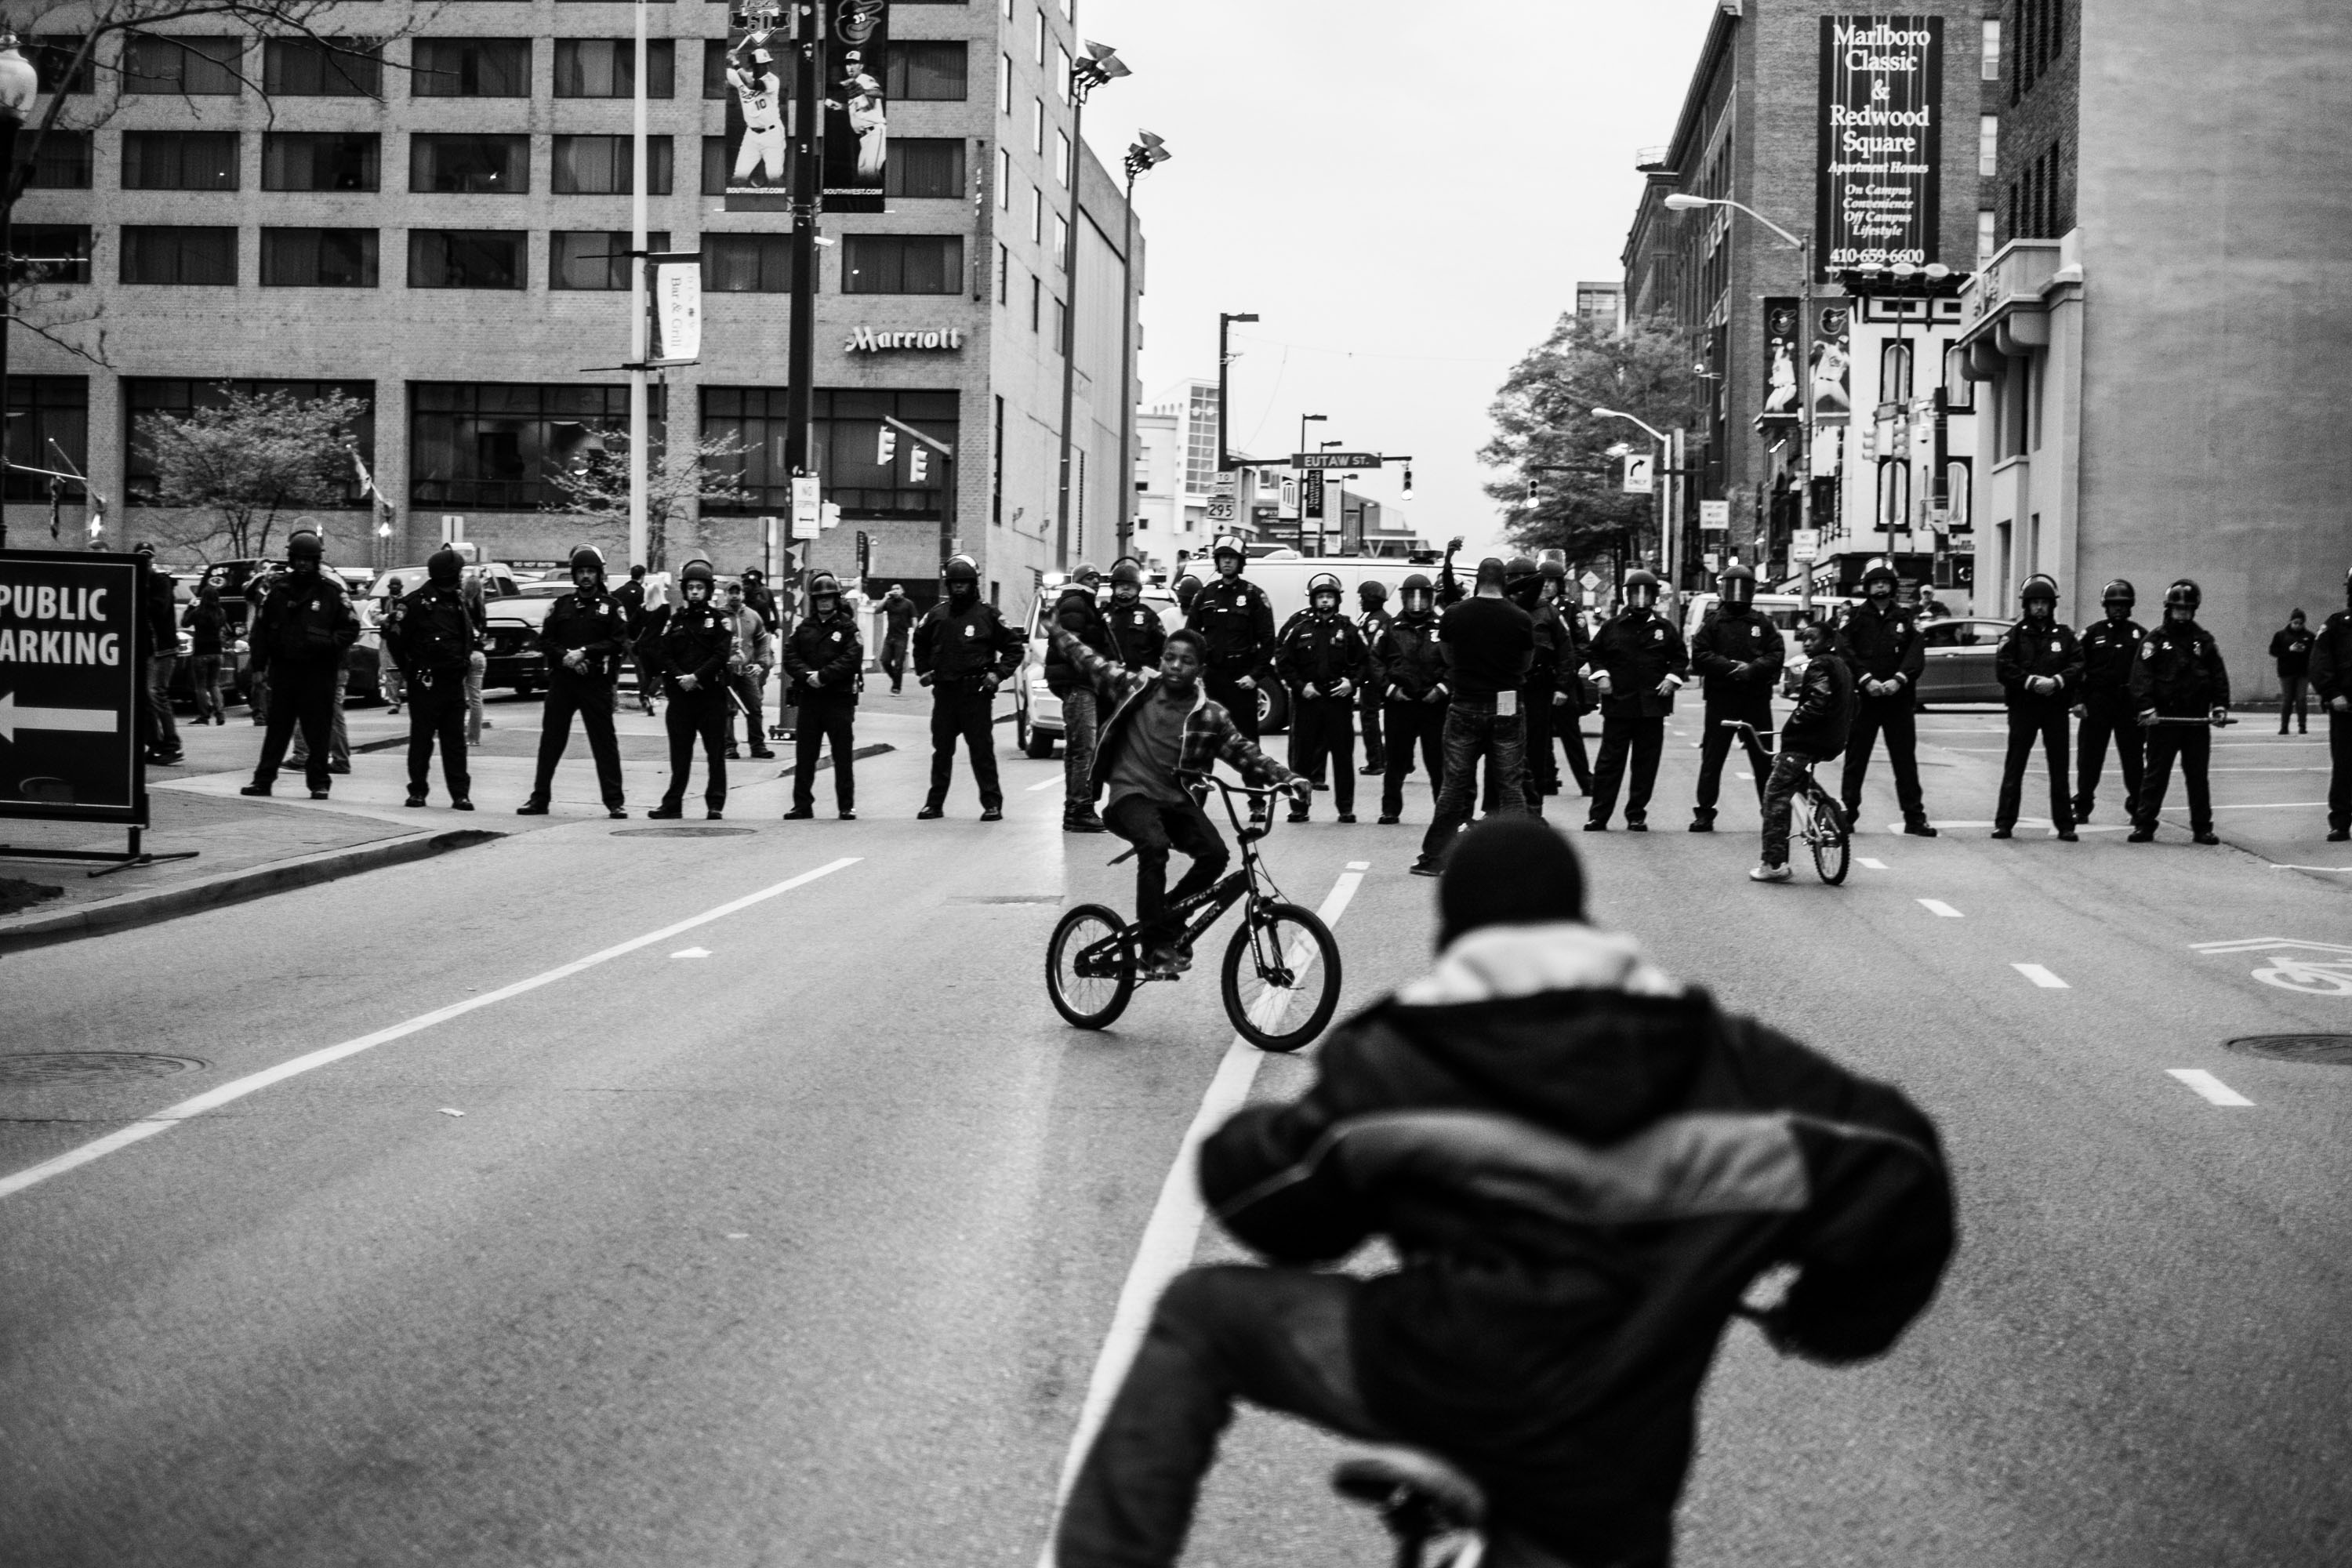 Children bike near a police barricade in downtown Baltimore during a May2 protest.